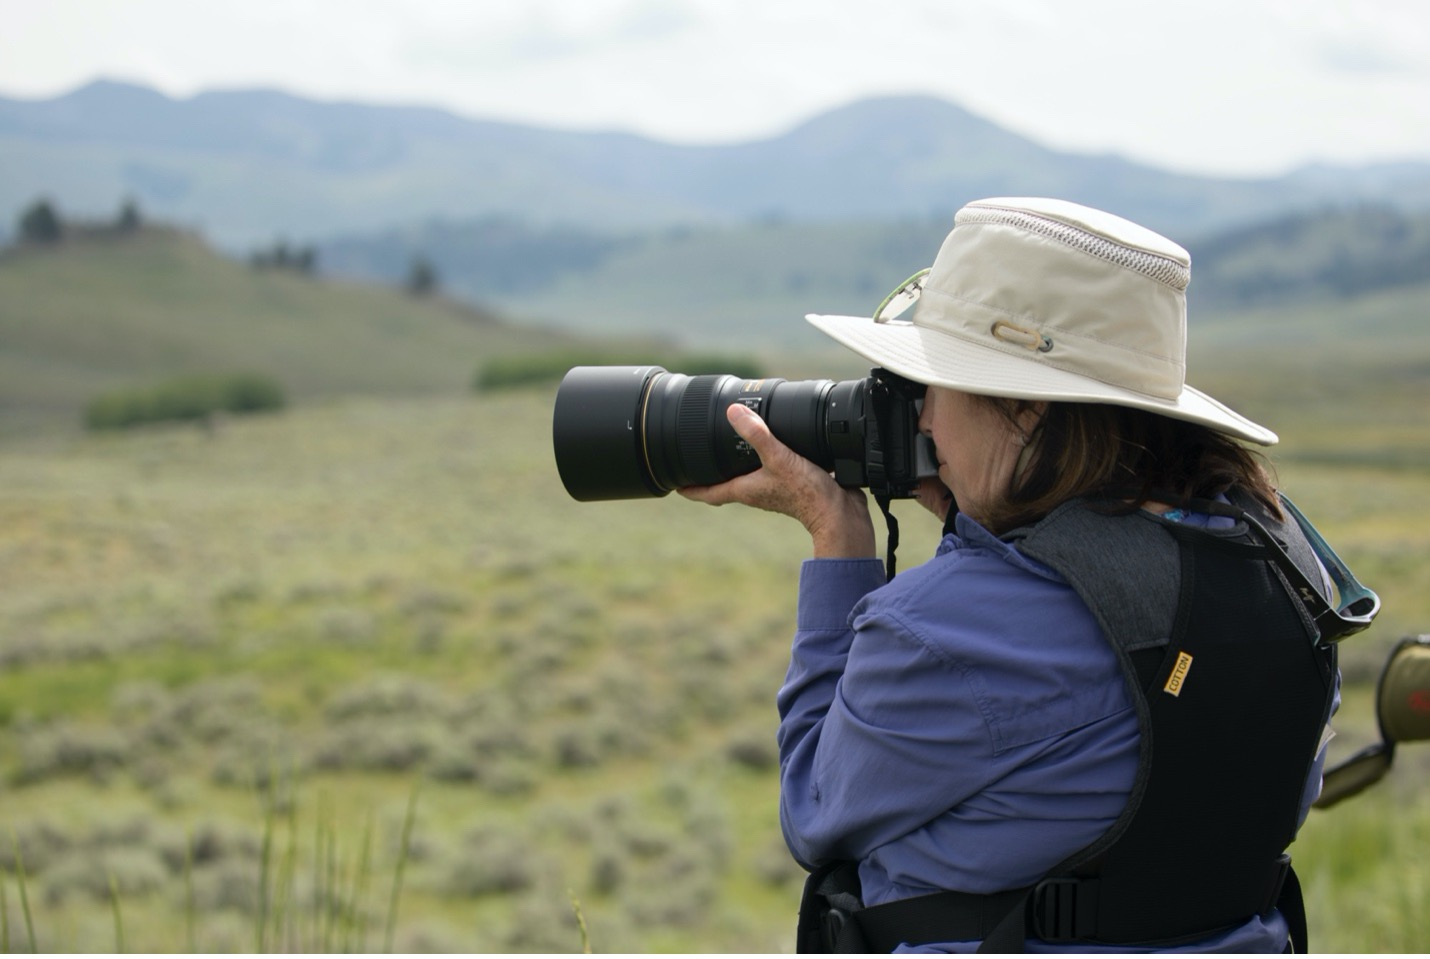 a woman photographs with a telephoto lens in Yellowstone National Park